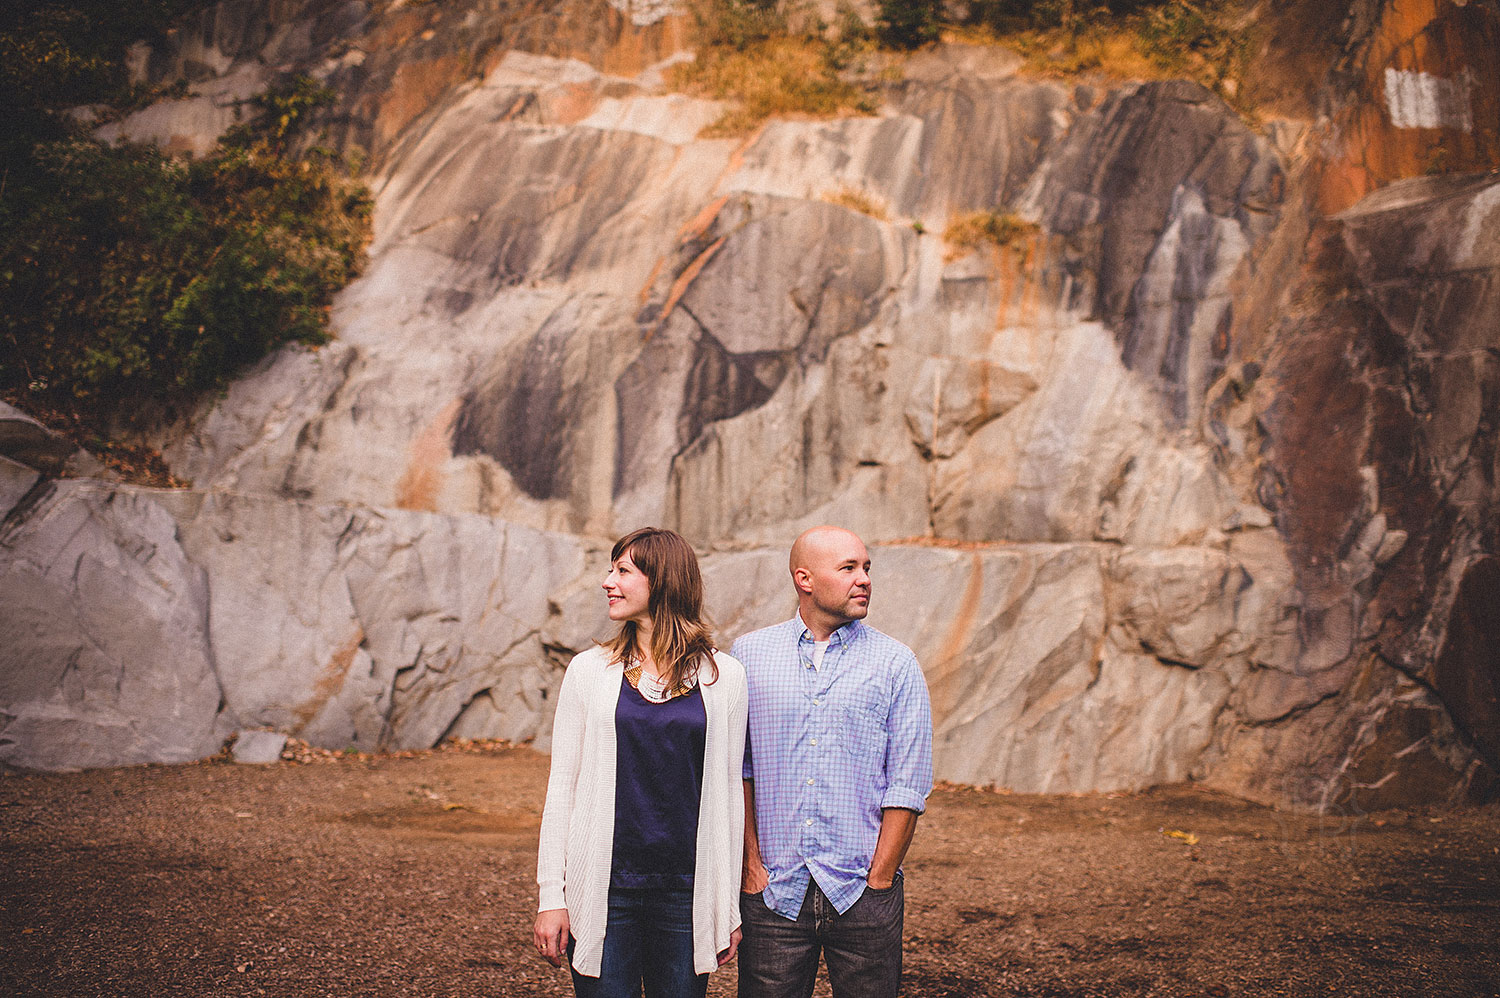 pat-robinson-photography-wilmington-engagement-session-15-2.jpg